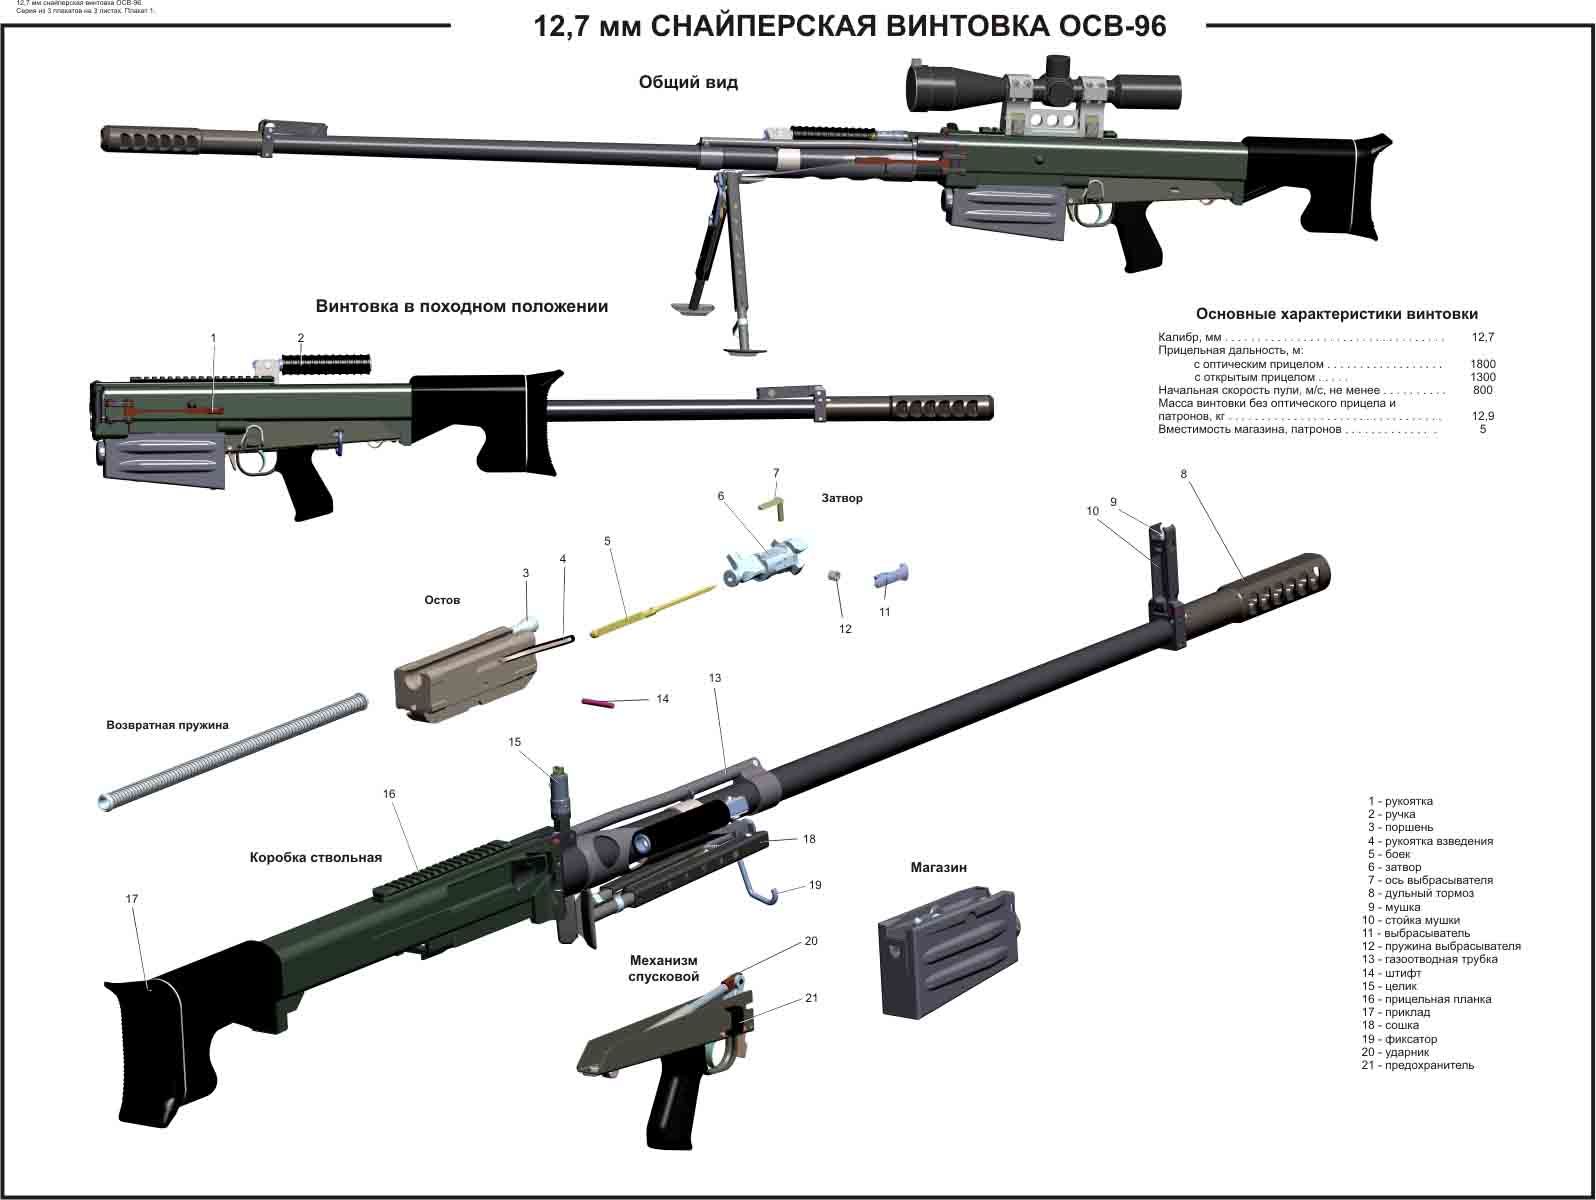 12x7 OSV-96 Sniper Rifle